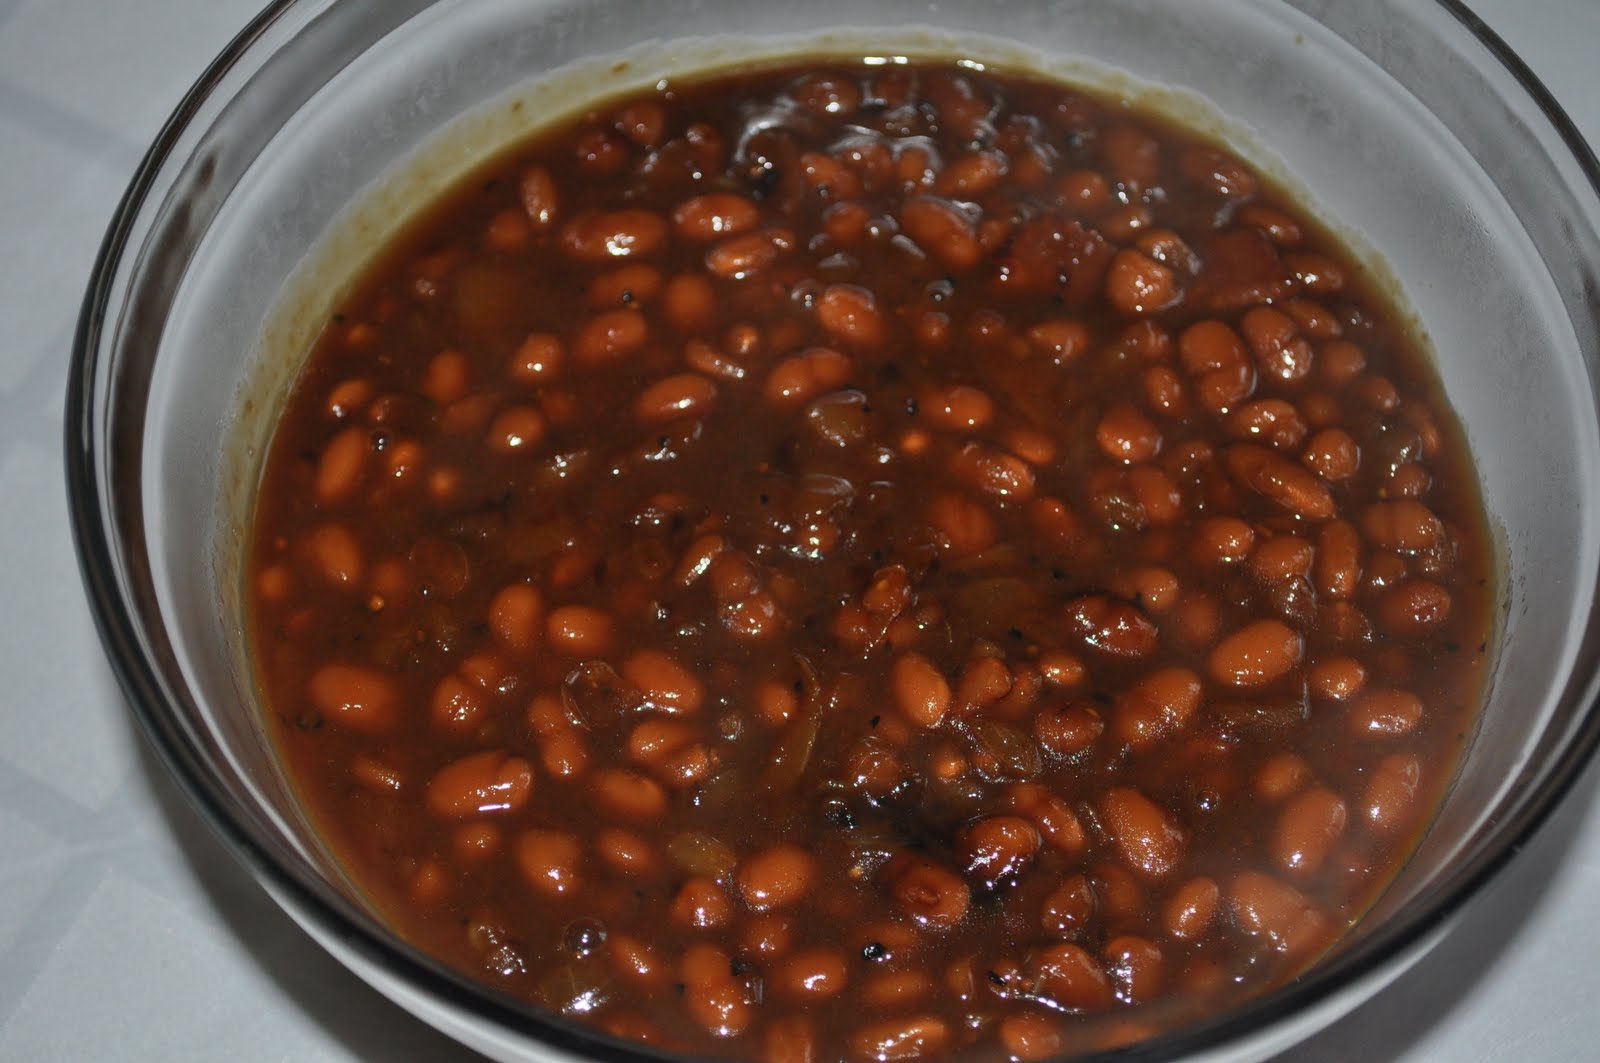 ... baked beans maple baked beans baked beans in the crock pot bark